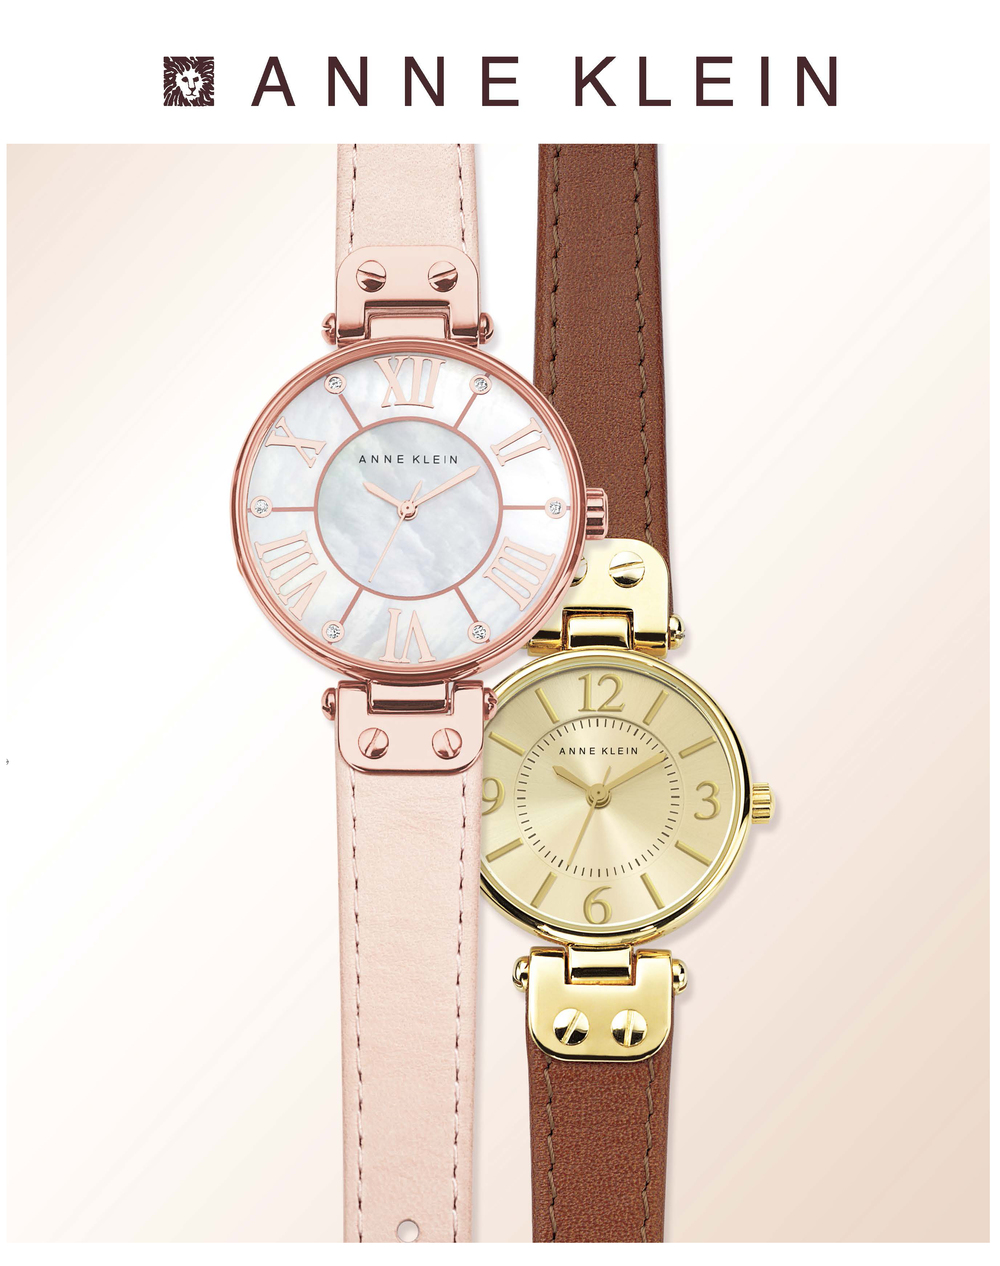 View the Anne Klein Collection